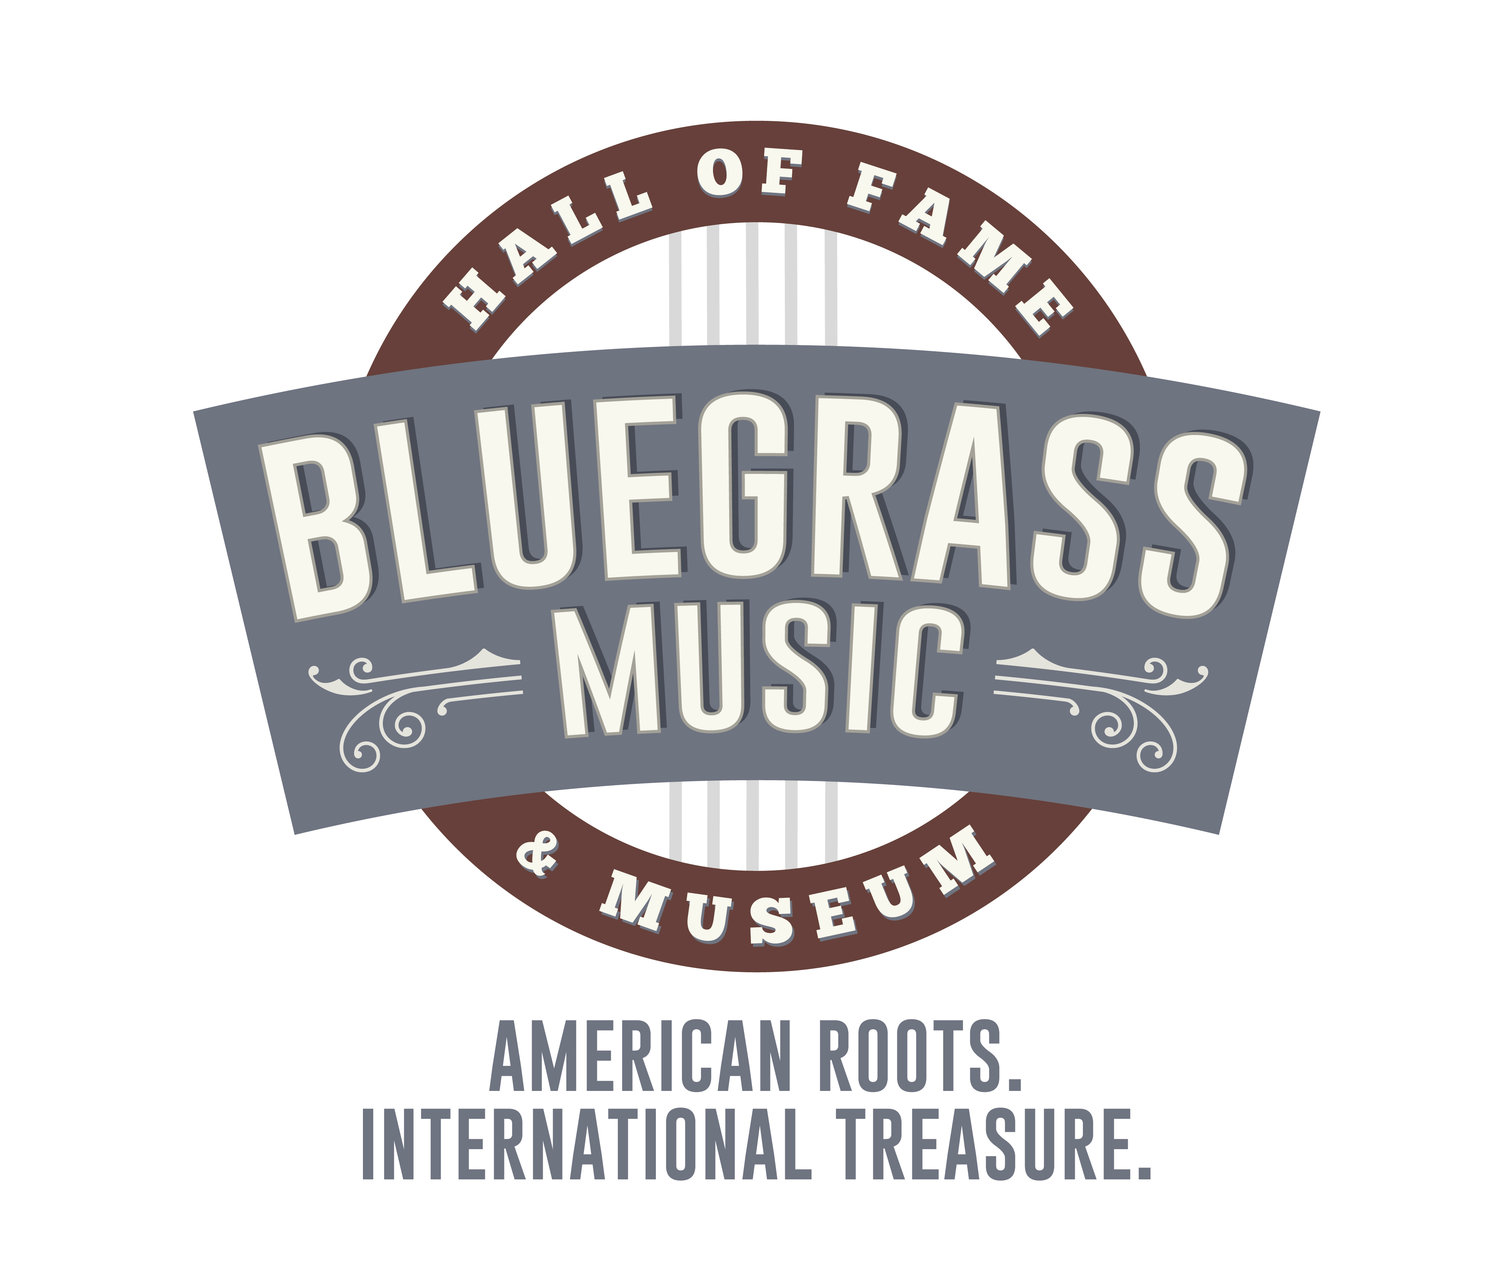 Bluegrass Music Hall of Fame & Museum